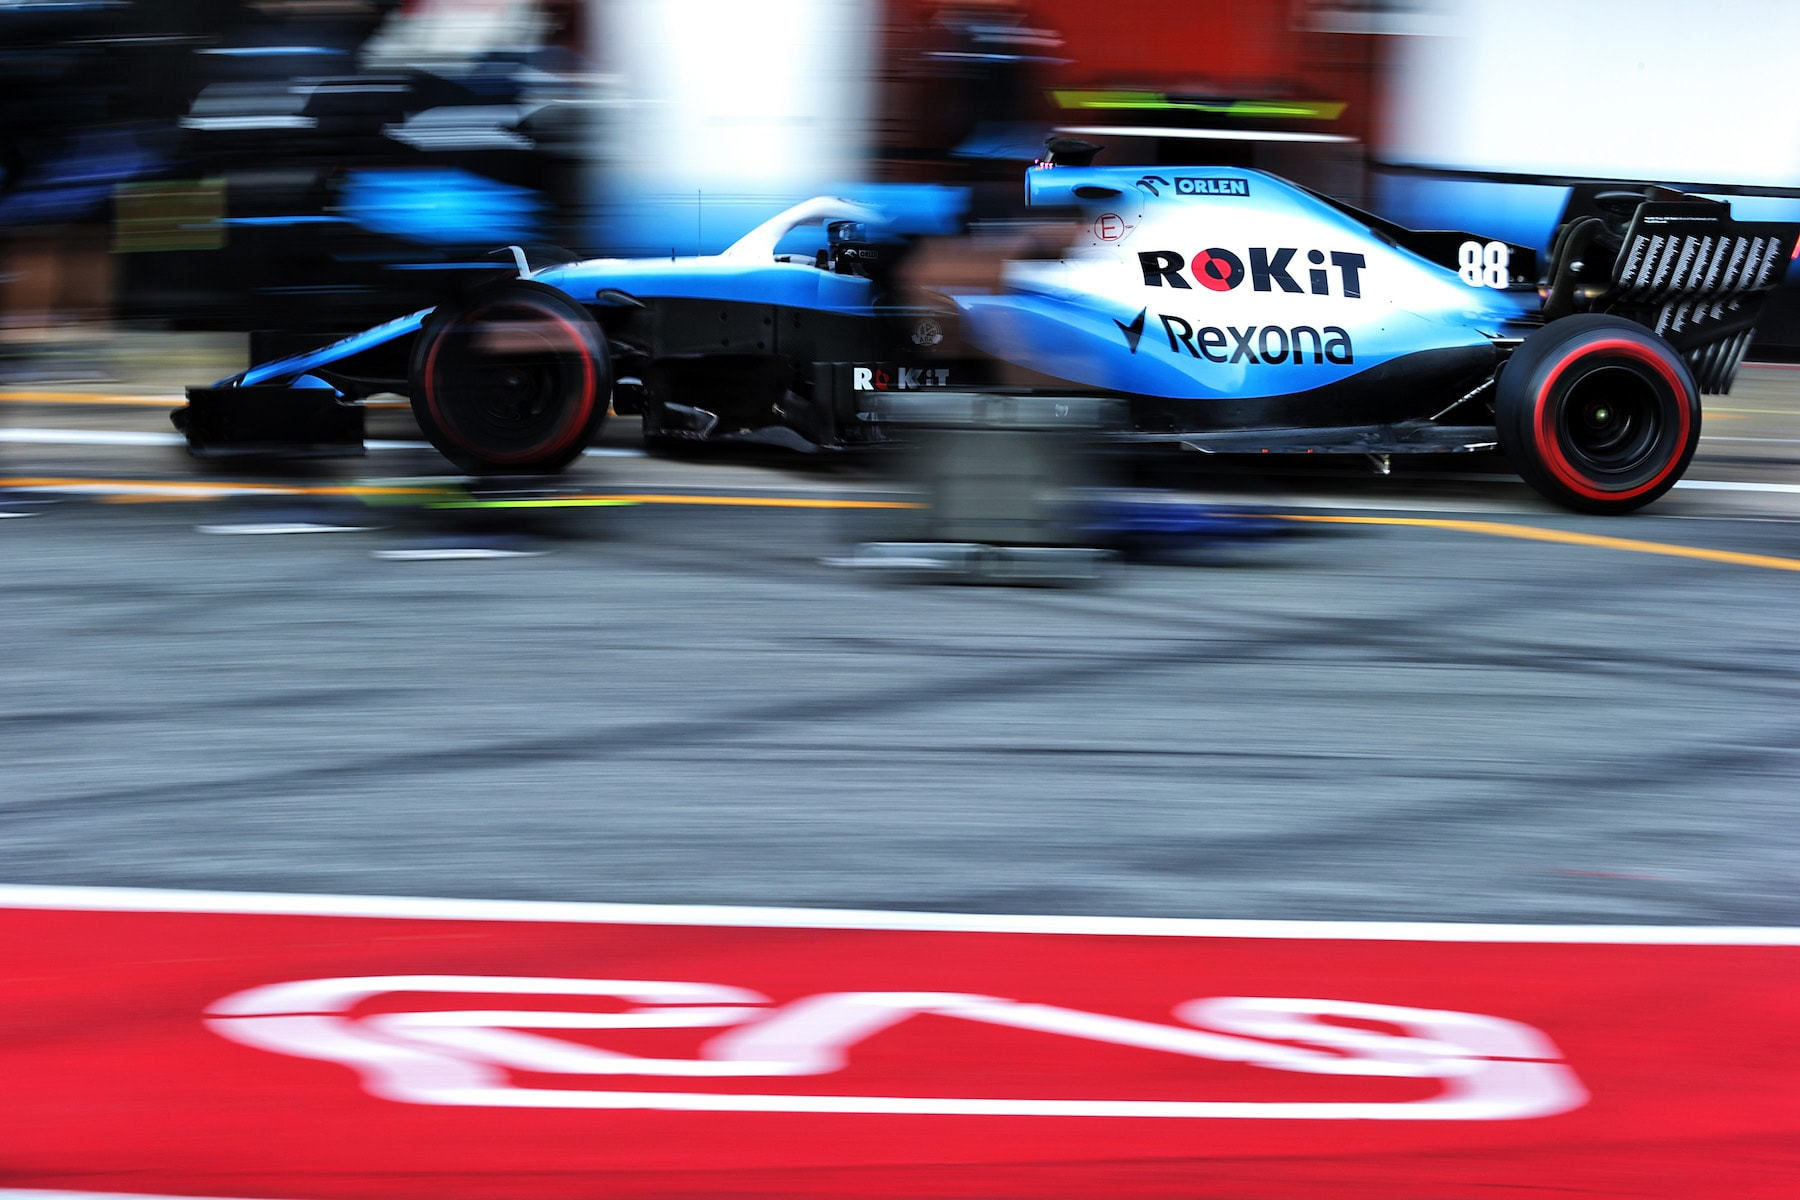 2019 Robert Kubica | Williams FW42 | 2019 Barcelona T2 D4 1 copy.jpg